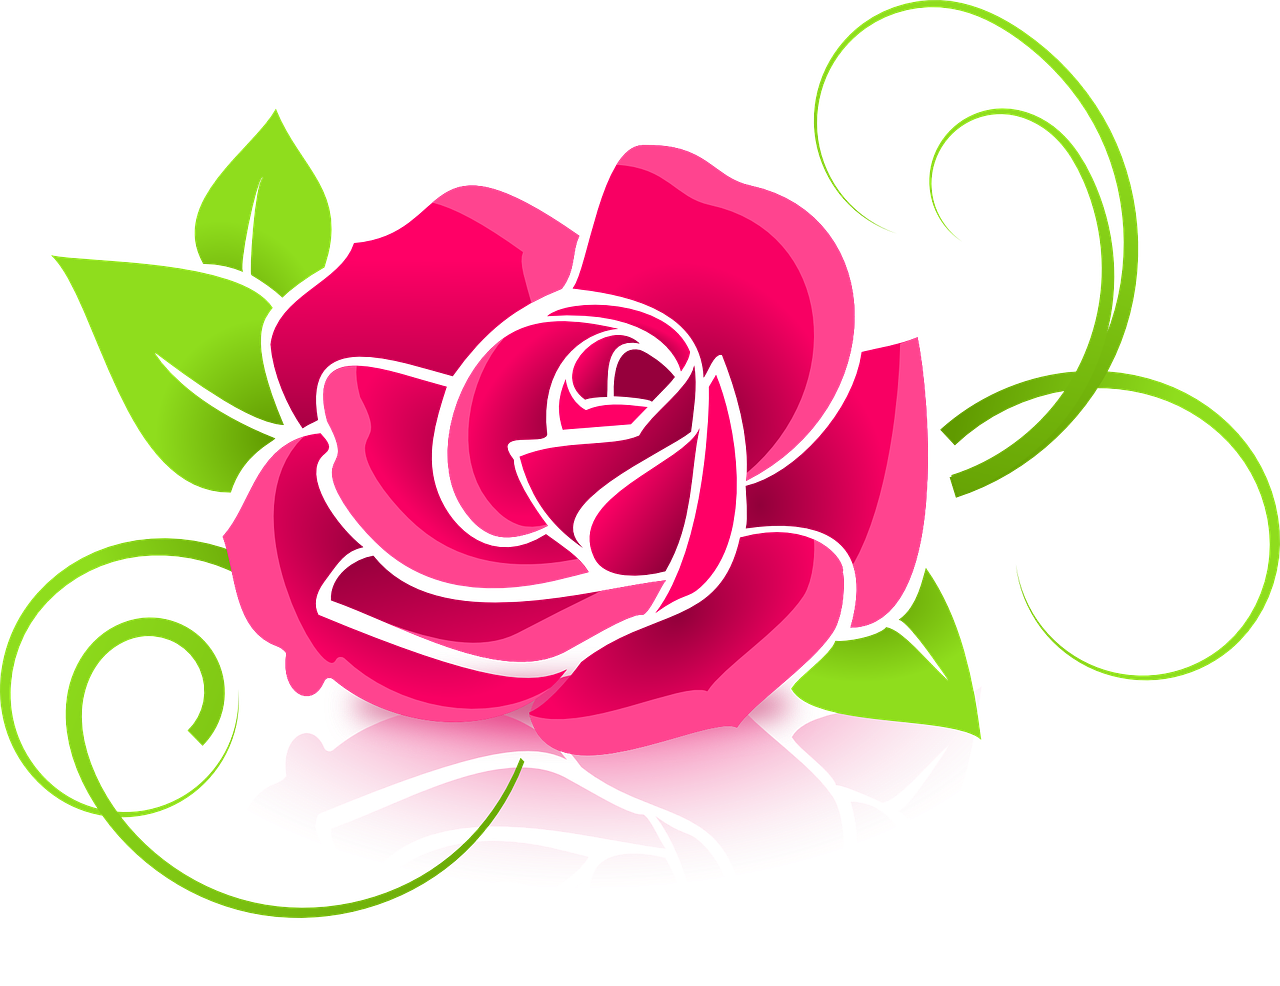 how to draw a rose 8